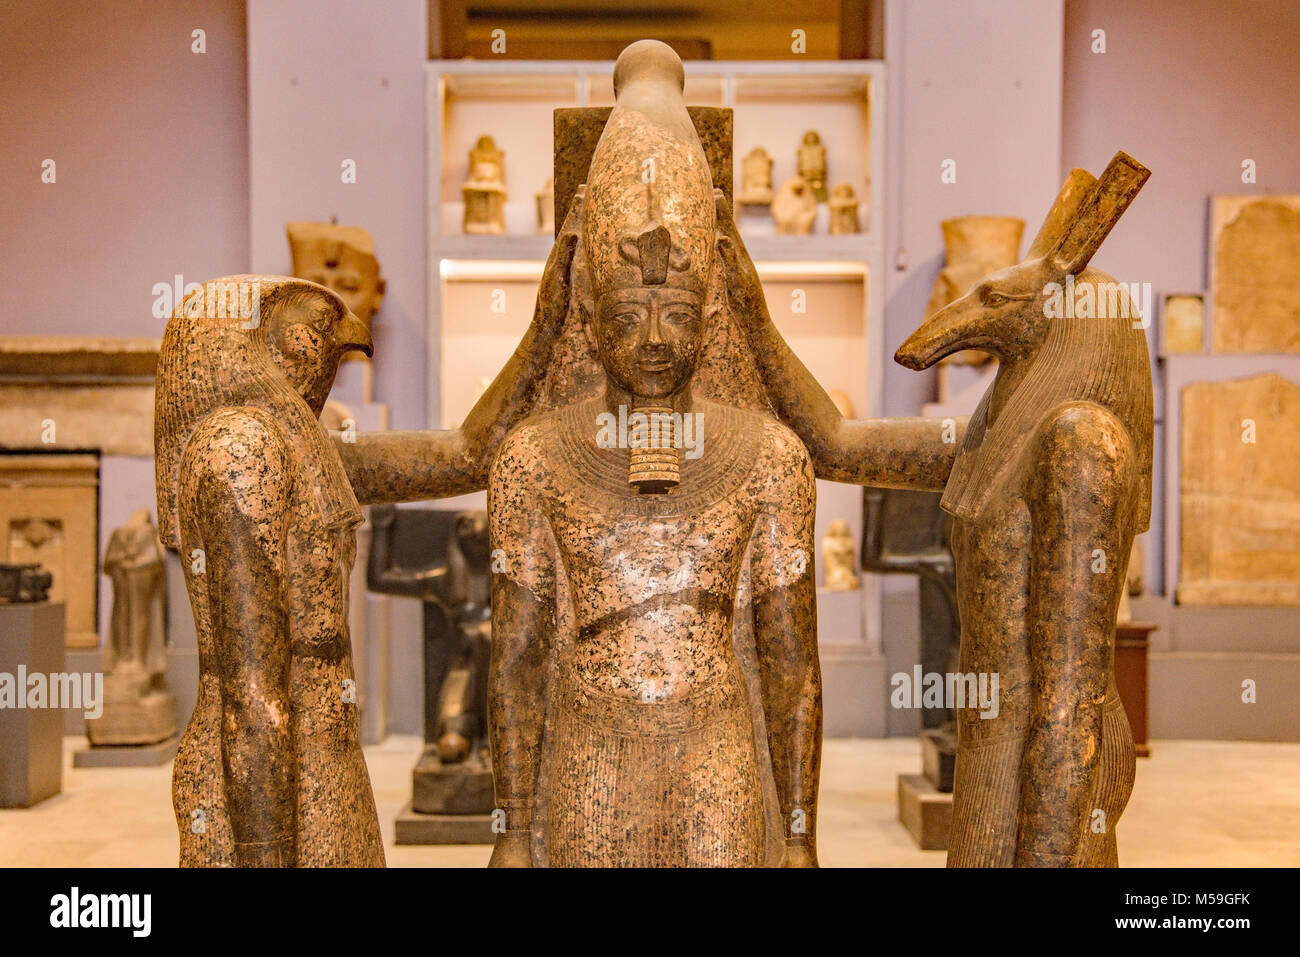 Ancient Egyptian Deities with pharaoh figure in the Cairo Museum of Antiquities, Egypt. - Stock Image